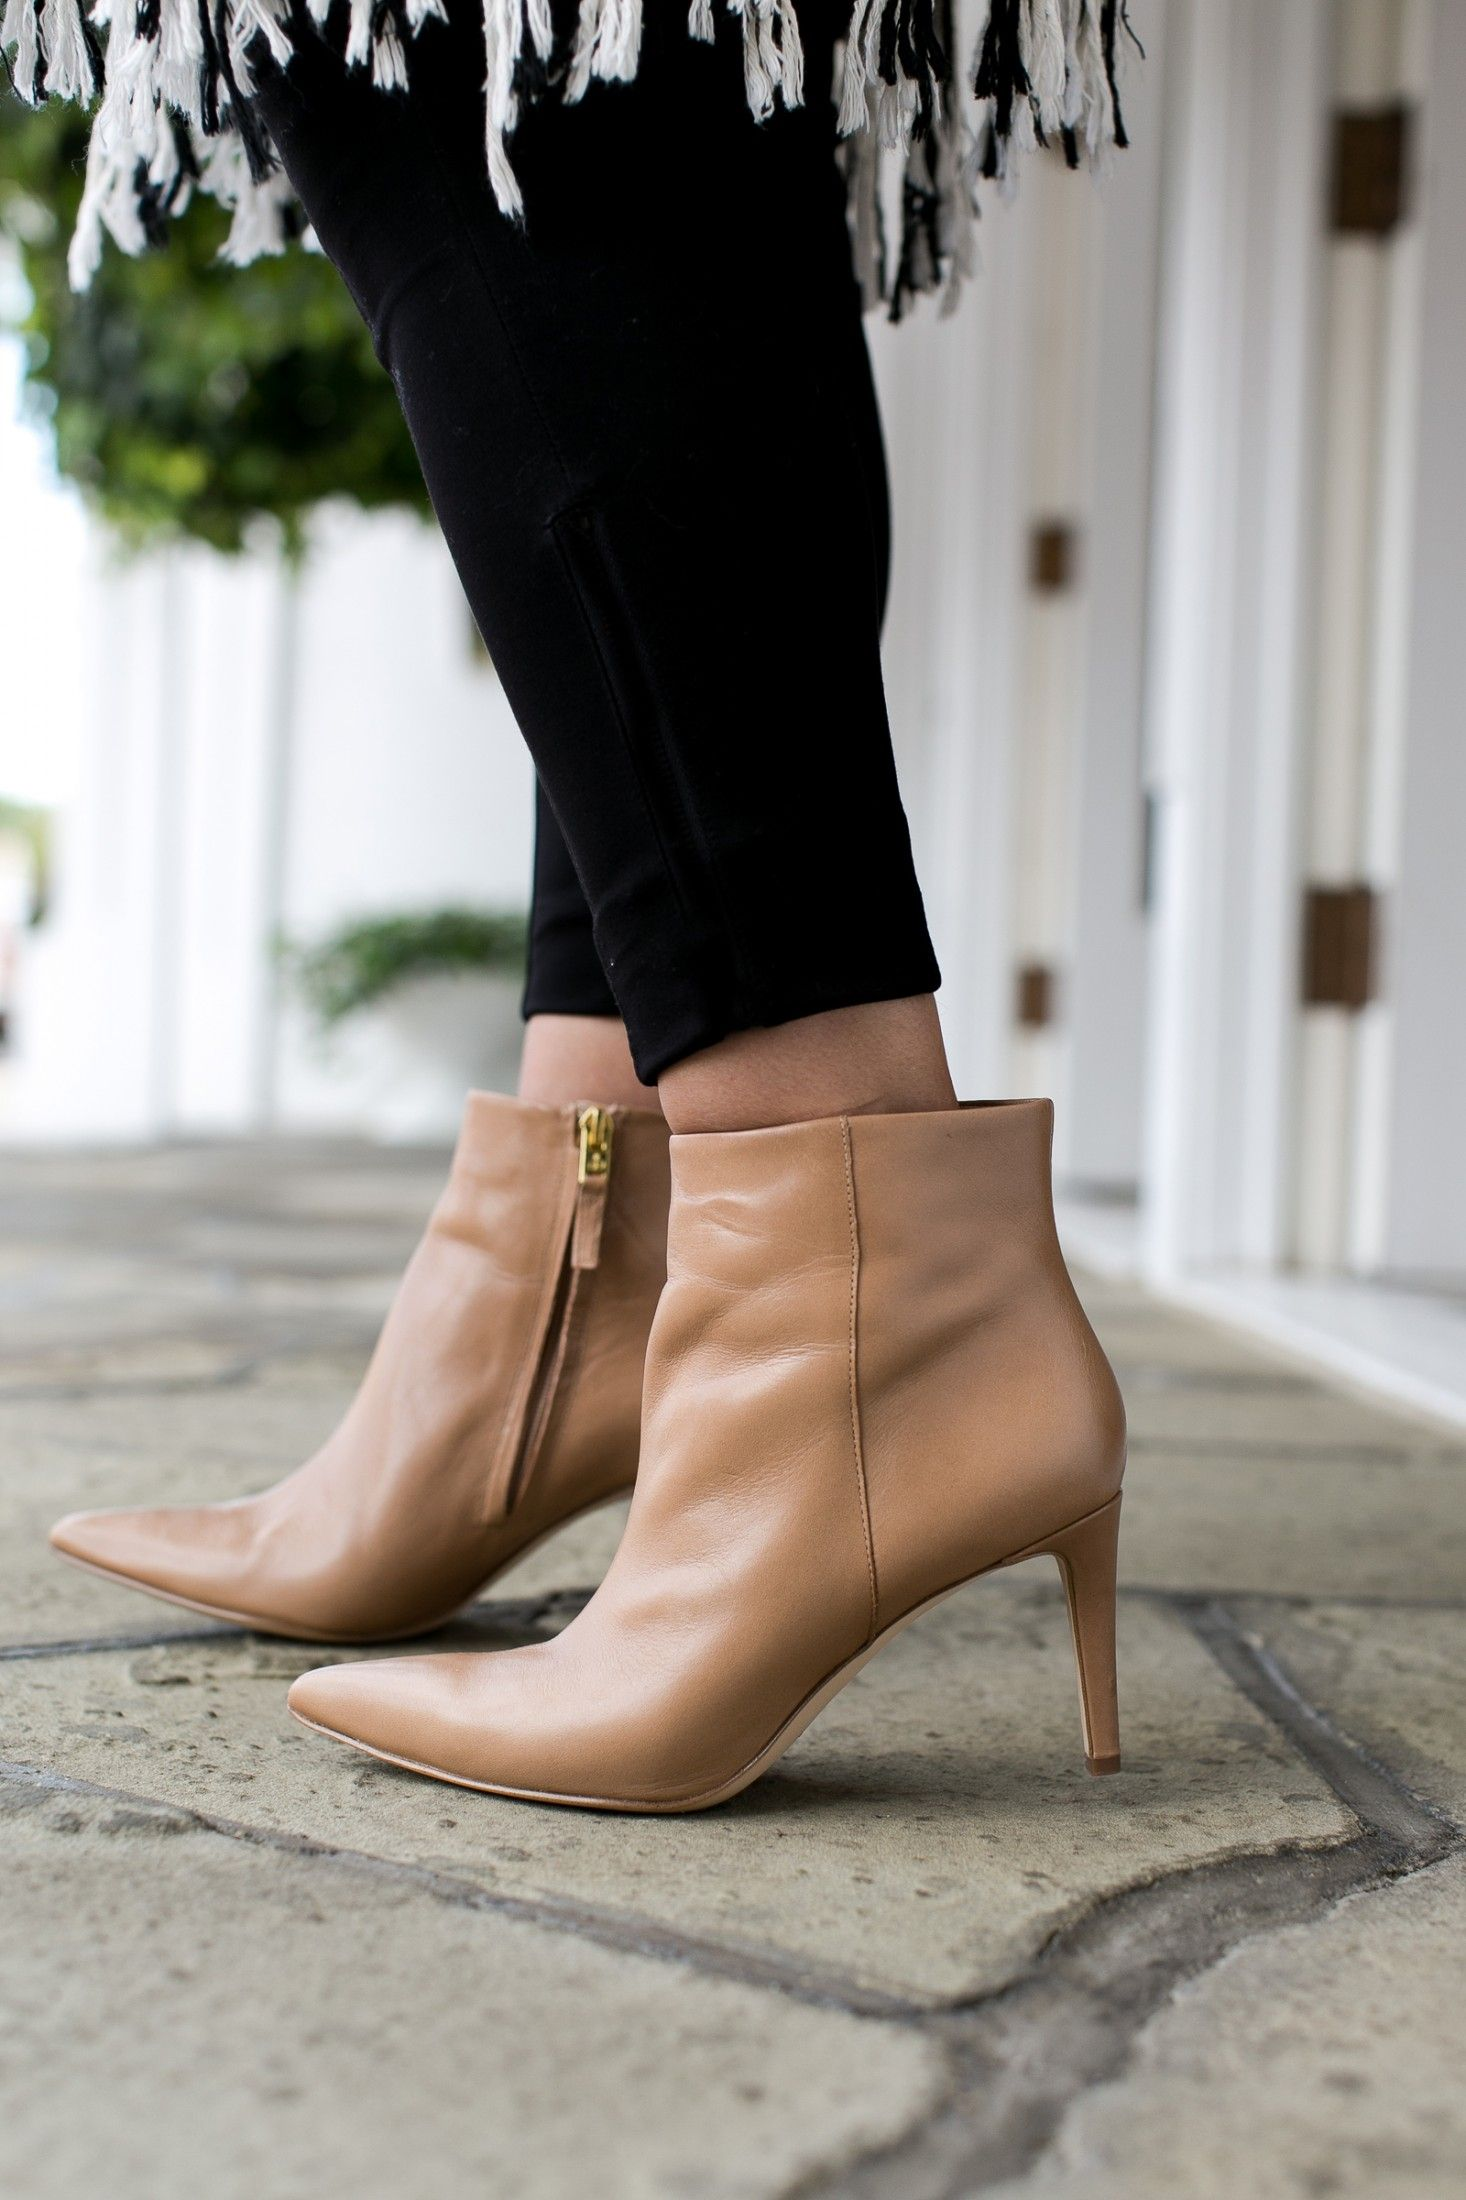 f29e742b1575e ... Sam Edelman booties for fall. This silhouette is such a sleek update to  the classic stacked heel bootie—and it